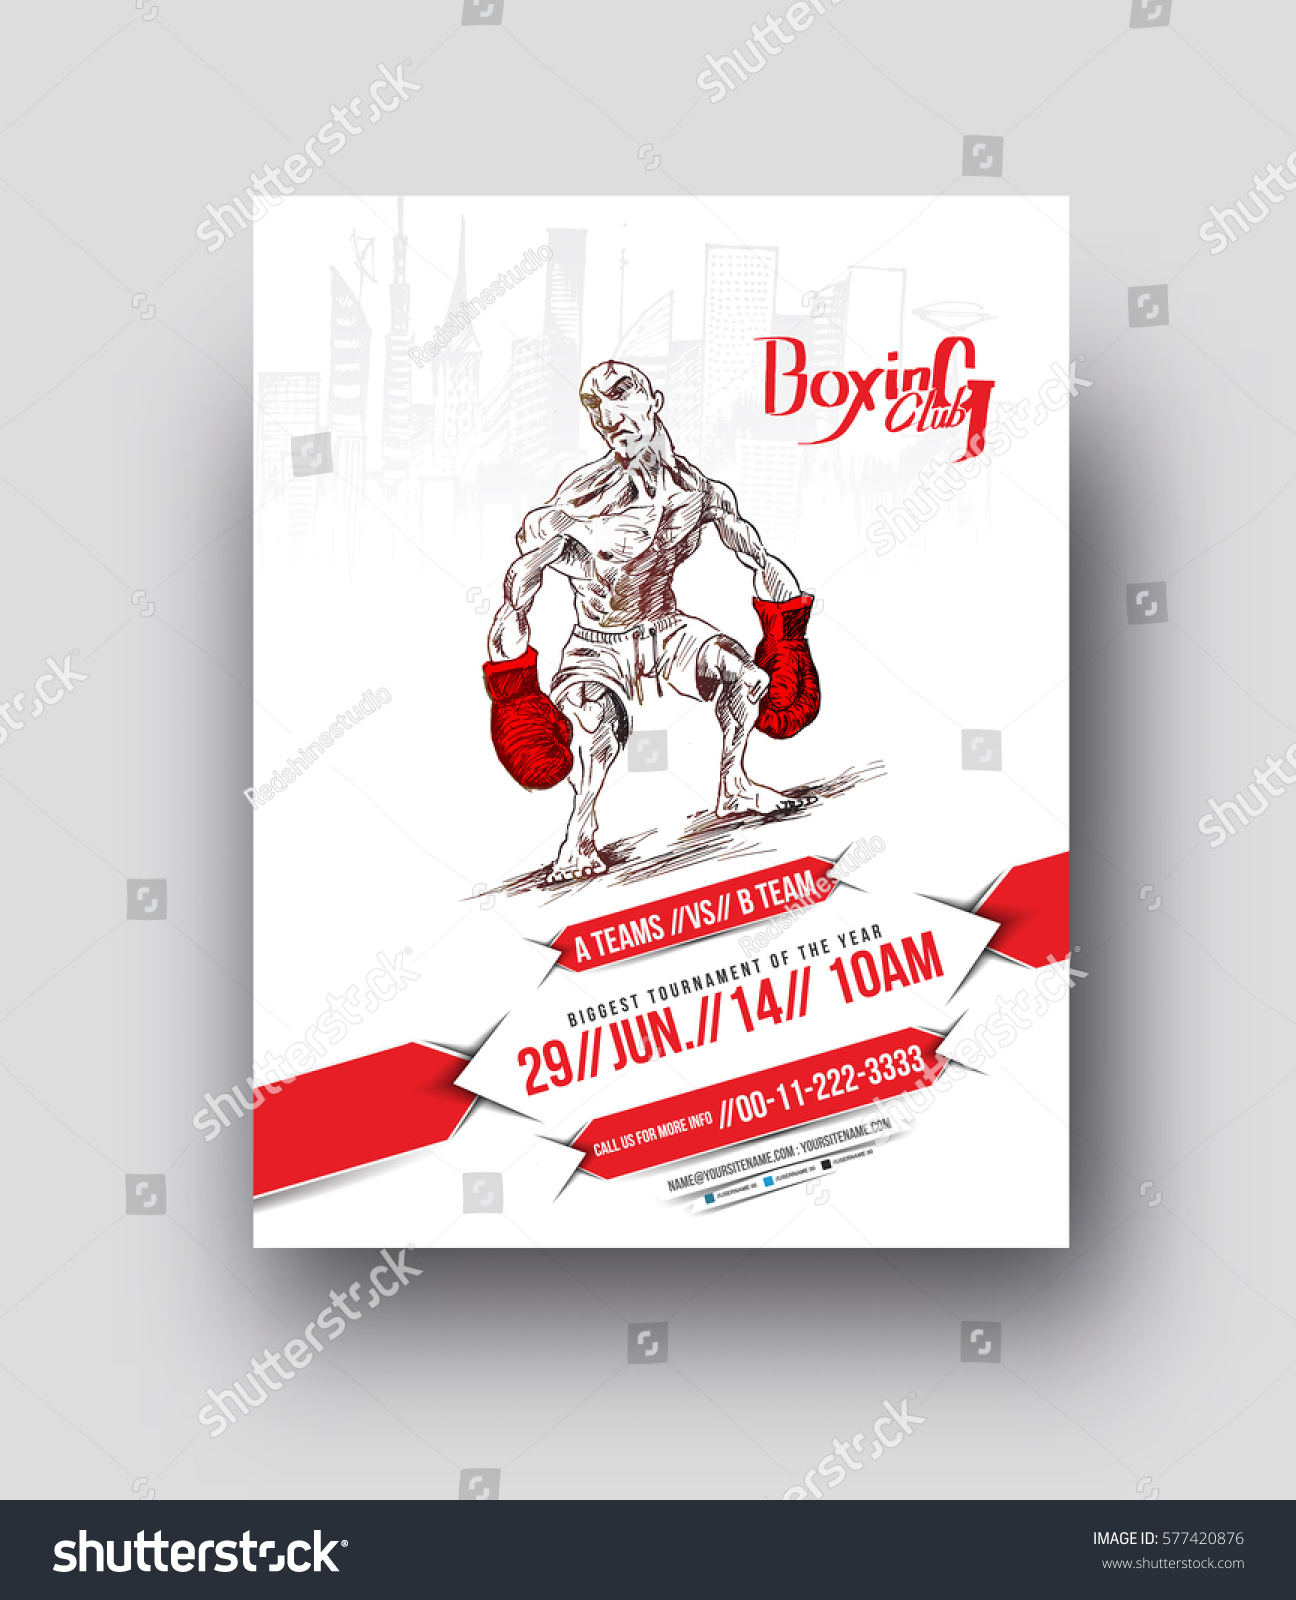 Boxing Club Flyer Poster Template Vector Stock Vector 577420876 ...